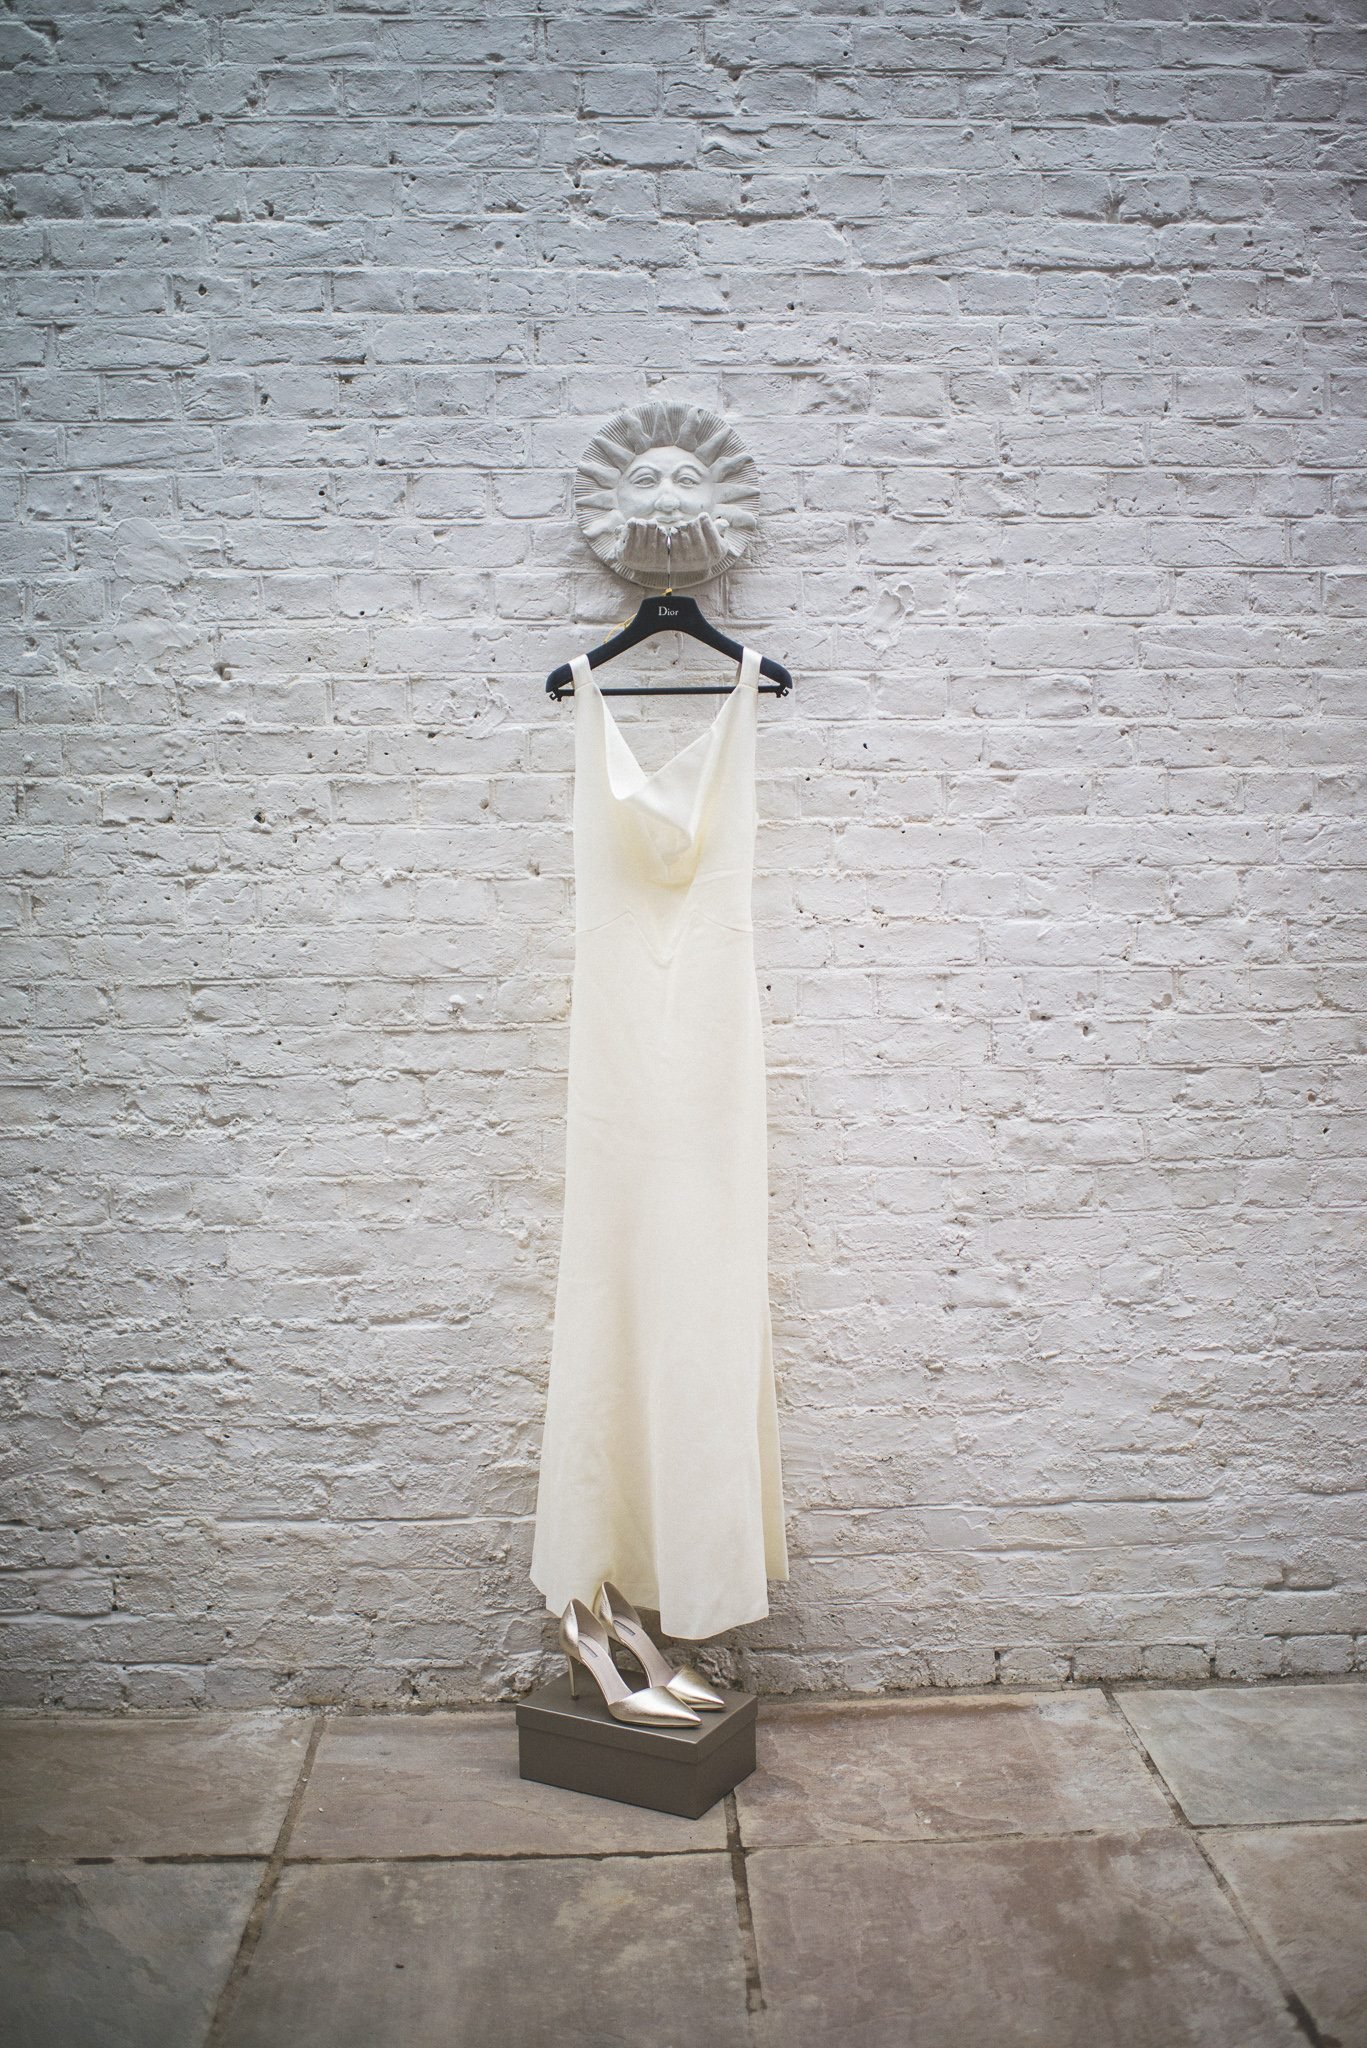 Ilaria's Dior gown and gold Armani shoes hang in front of a white brick wall